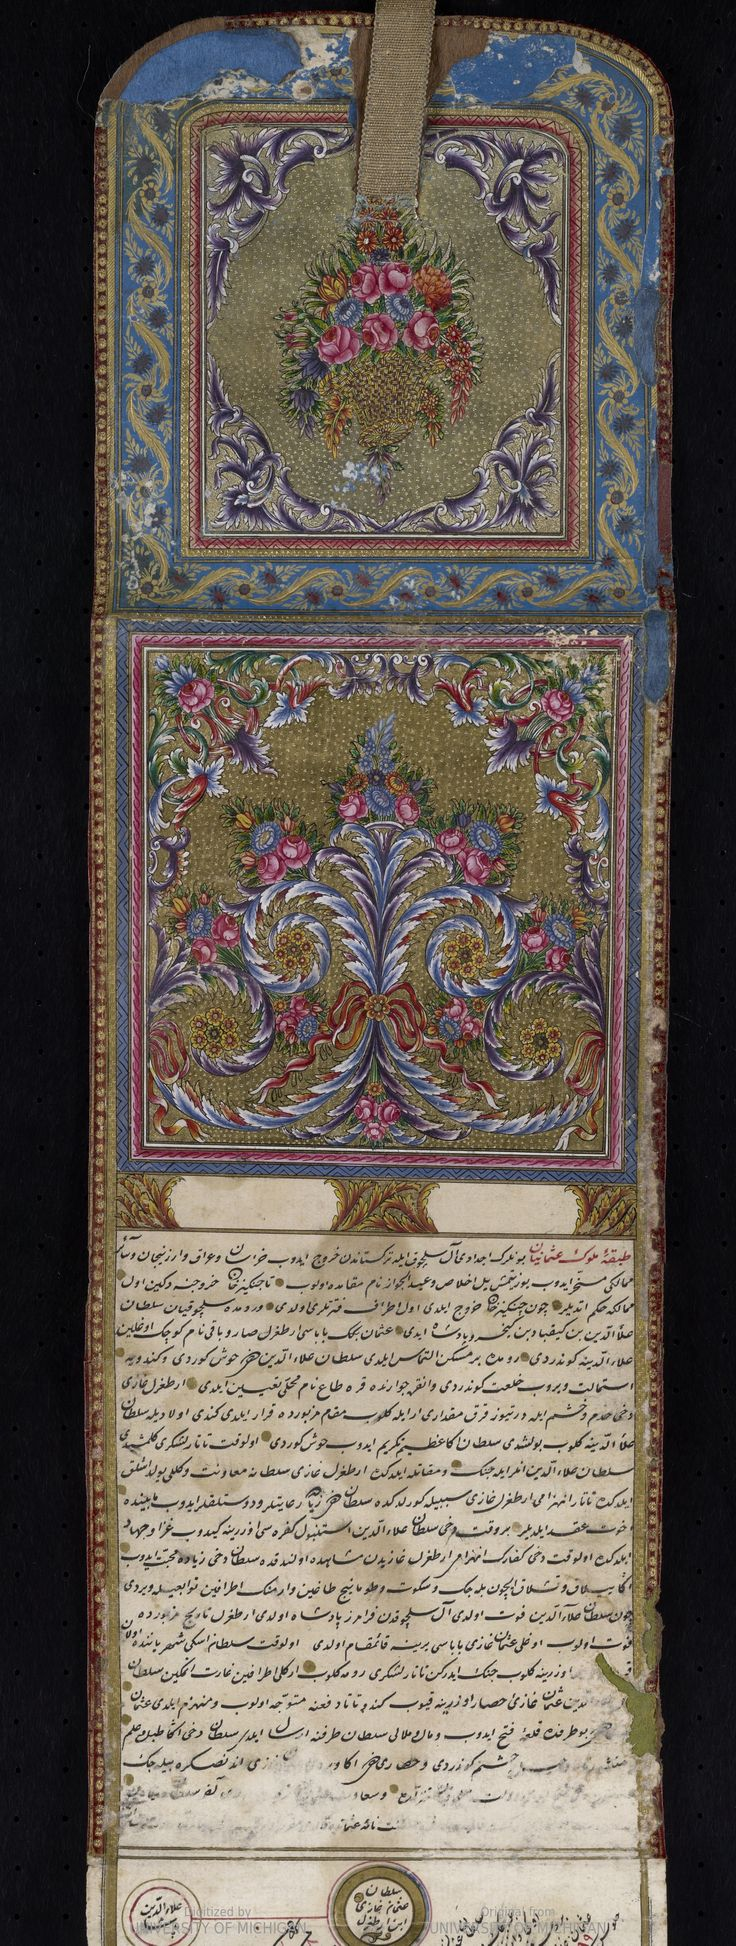 View of a written portion of Islamic Manuscript 391